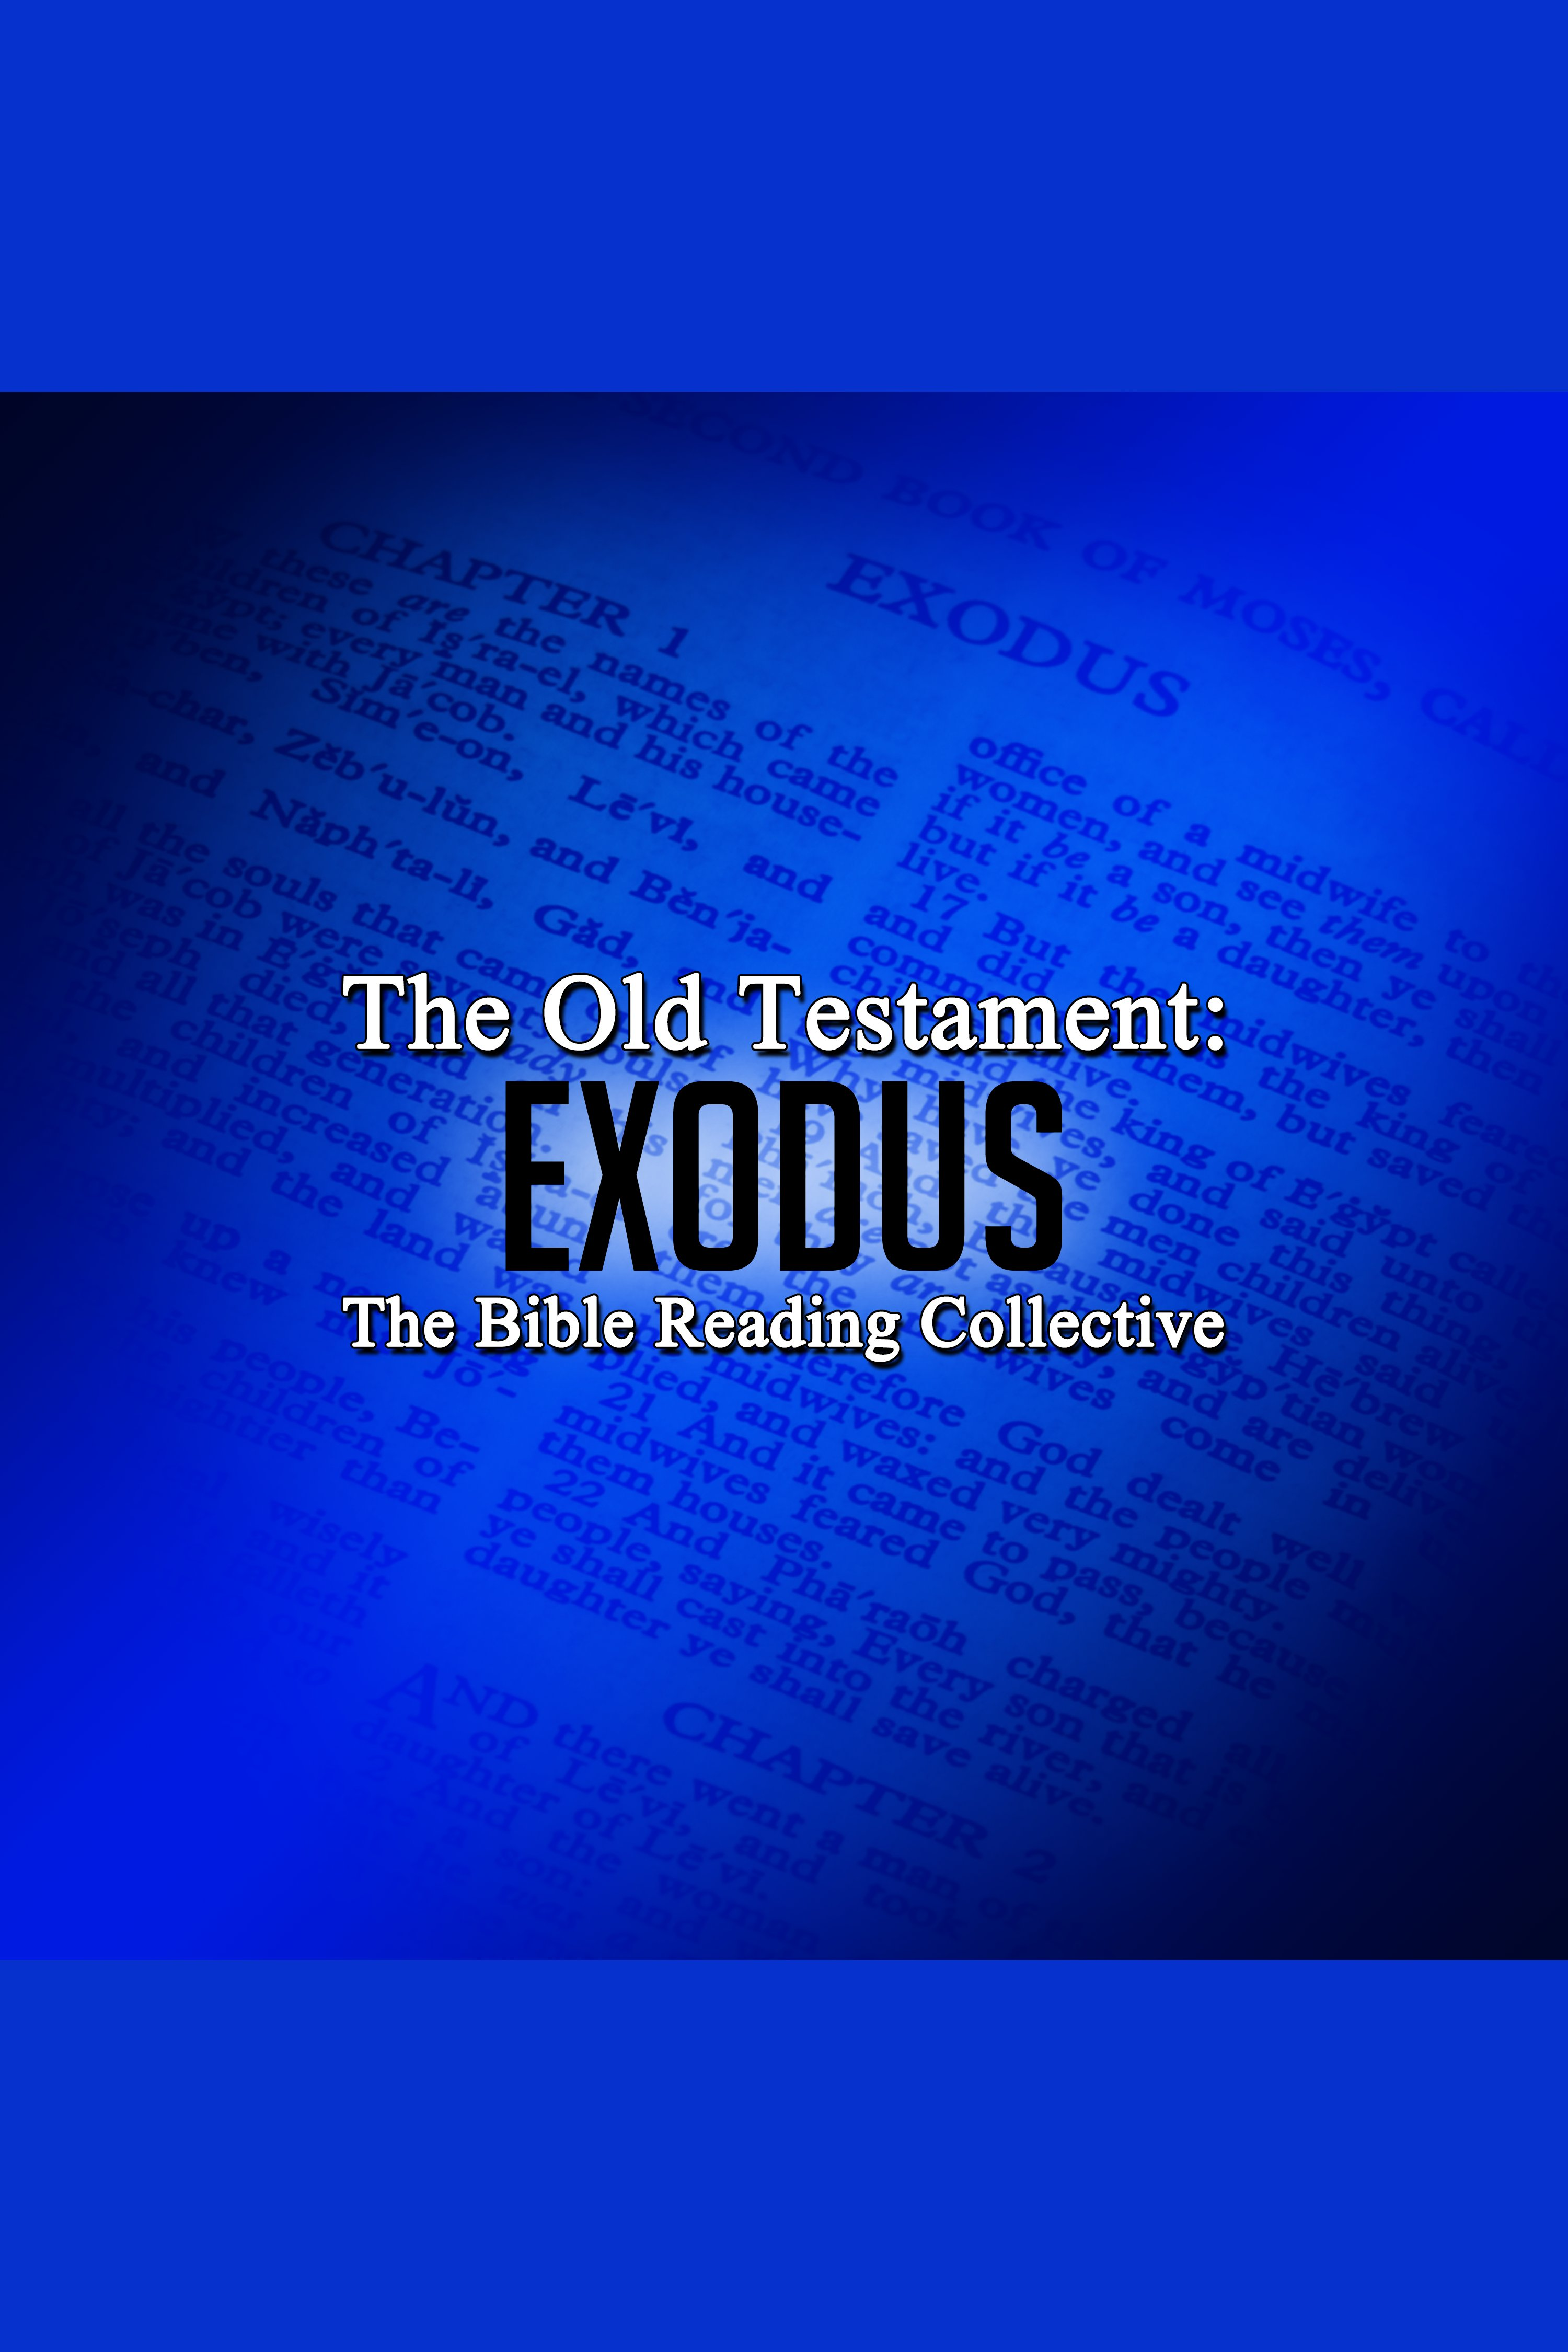 Old Testament, The: Exodus cover image